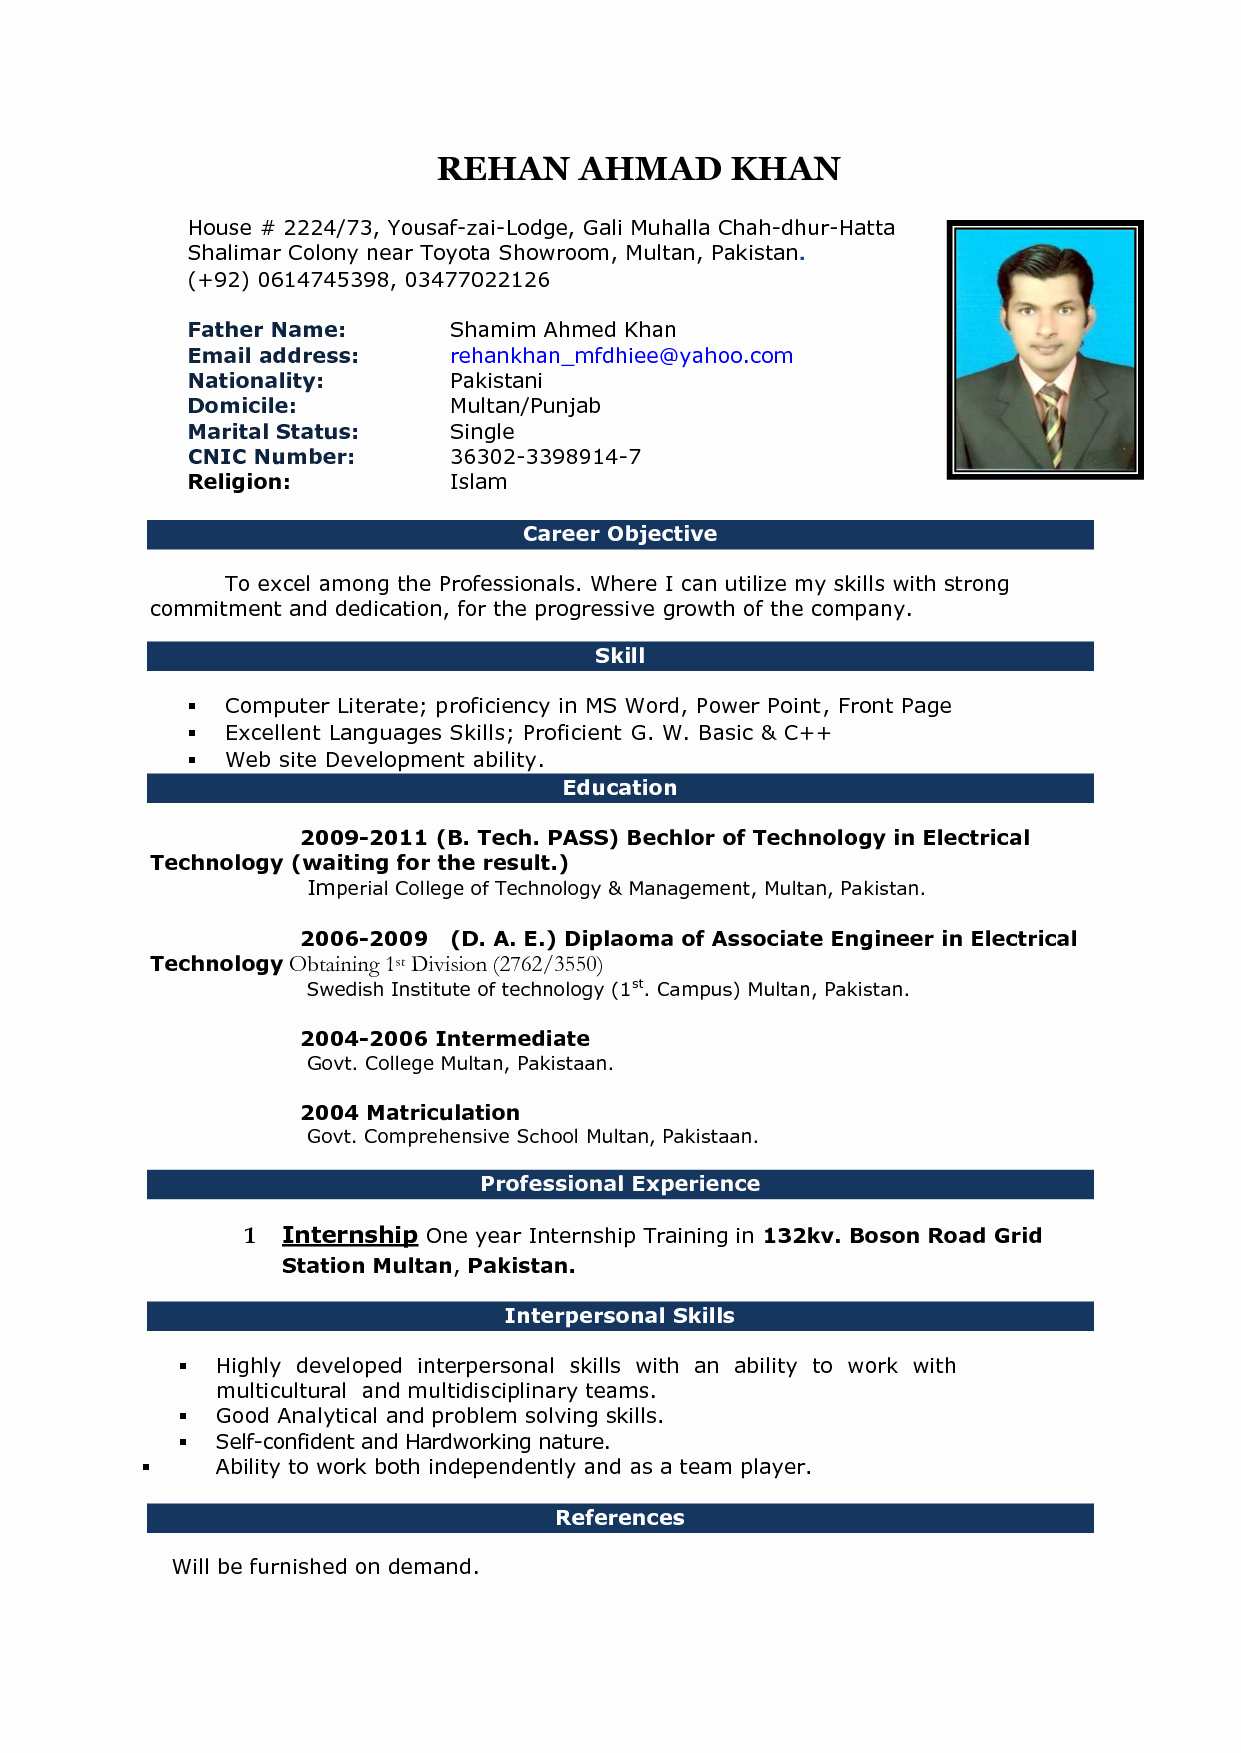 Free Resumes Download Word format Fresh Image Result for Cv format In Ms Word 2007 Free